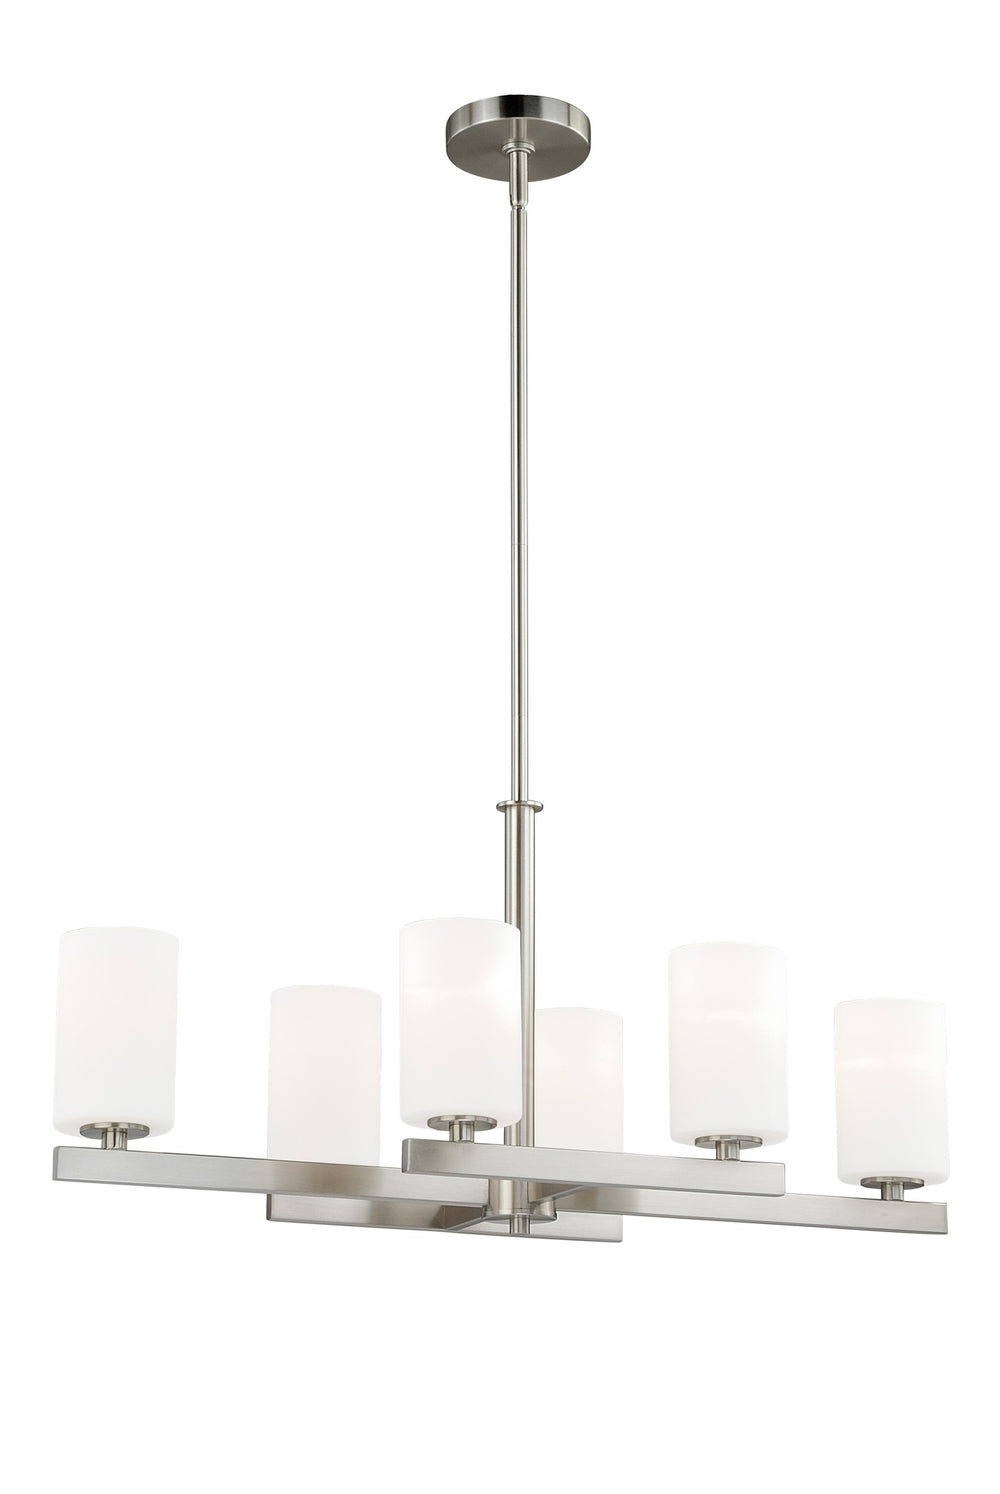 Buy P0127 Vaxcel Glendale 6L Chandelier Satin Nickel from LightingOriginals.ca